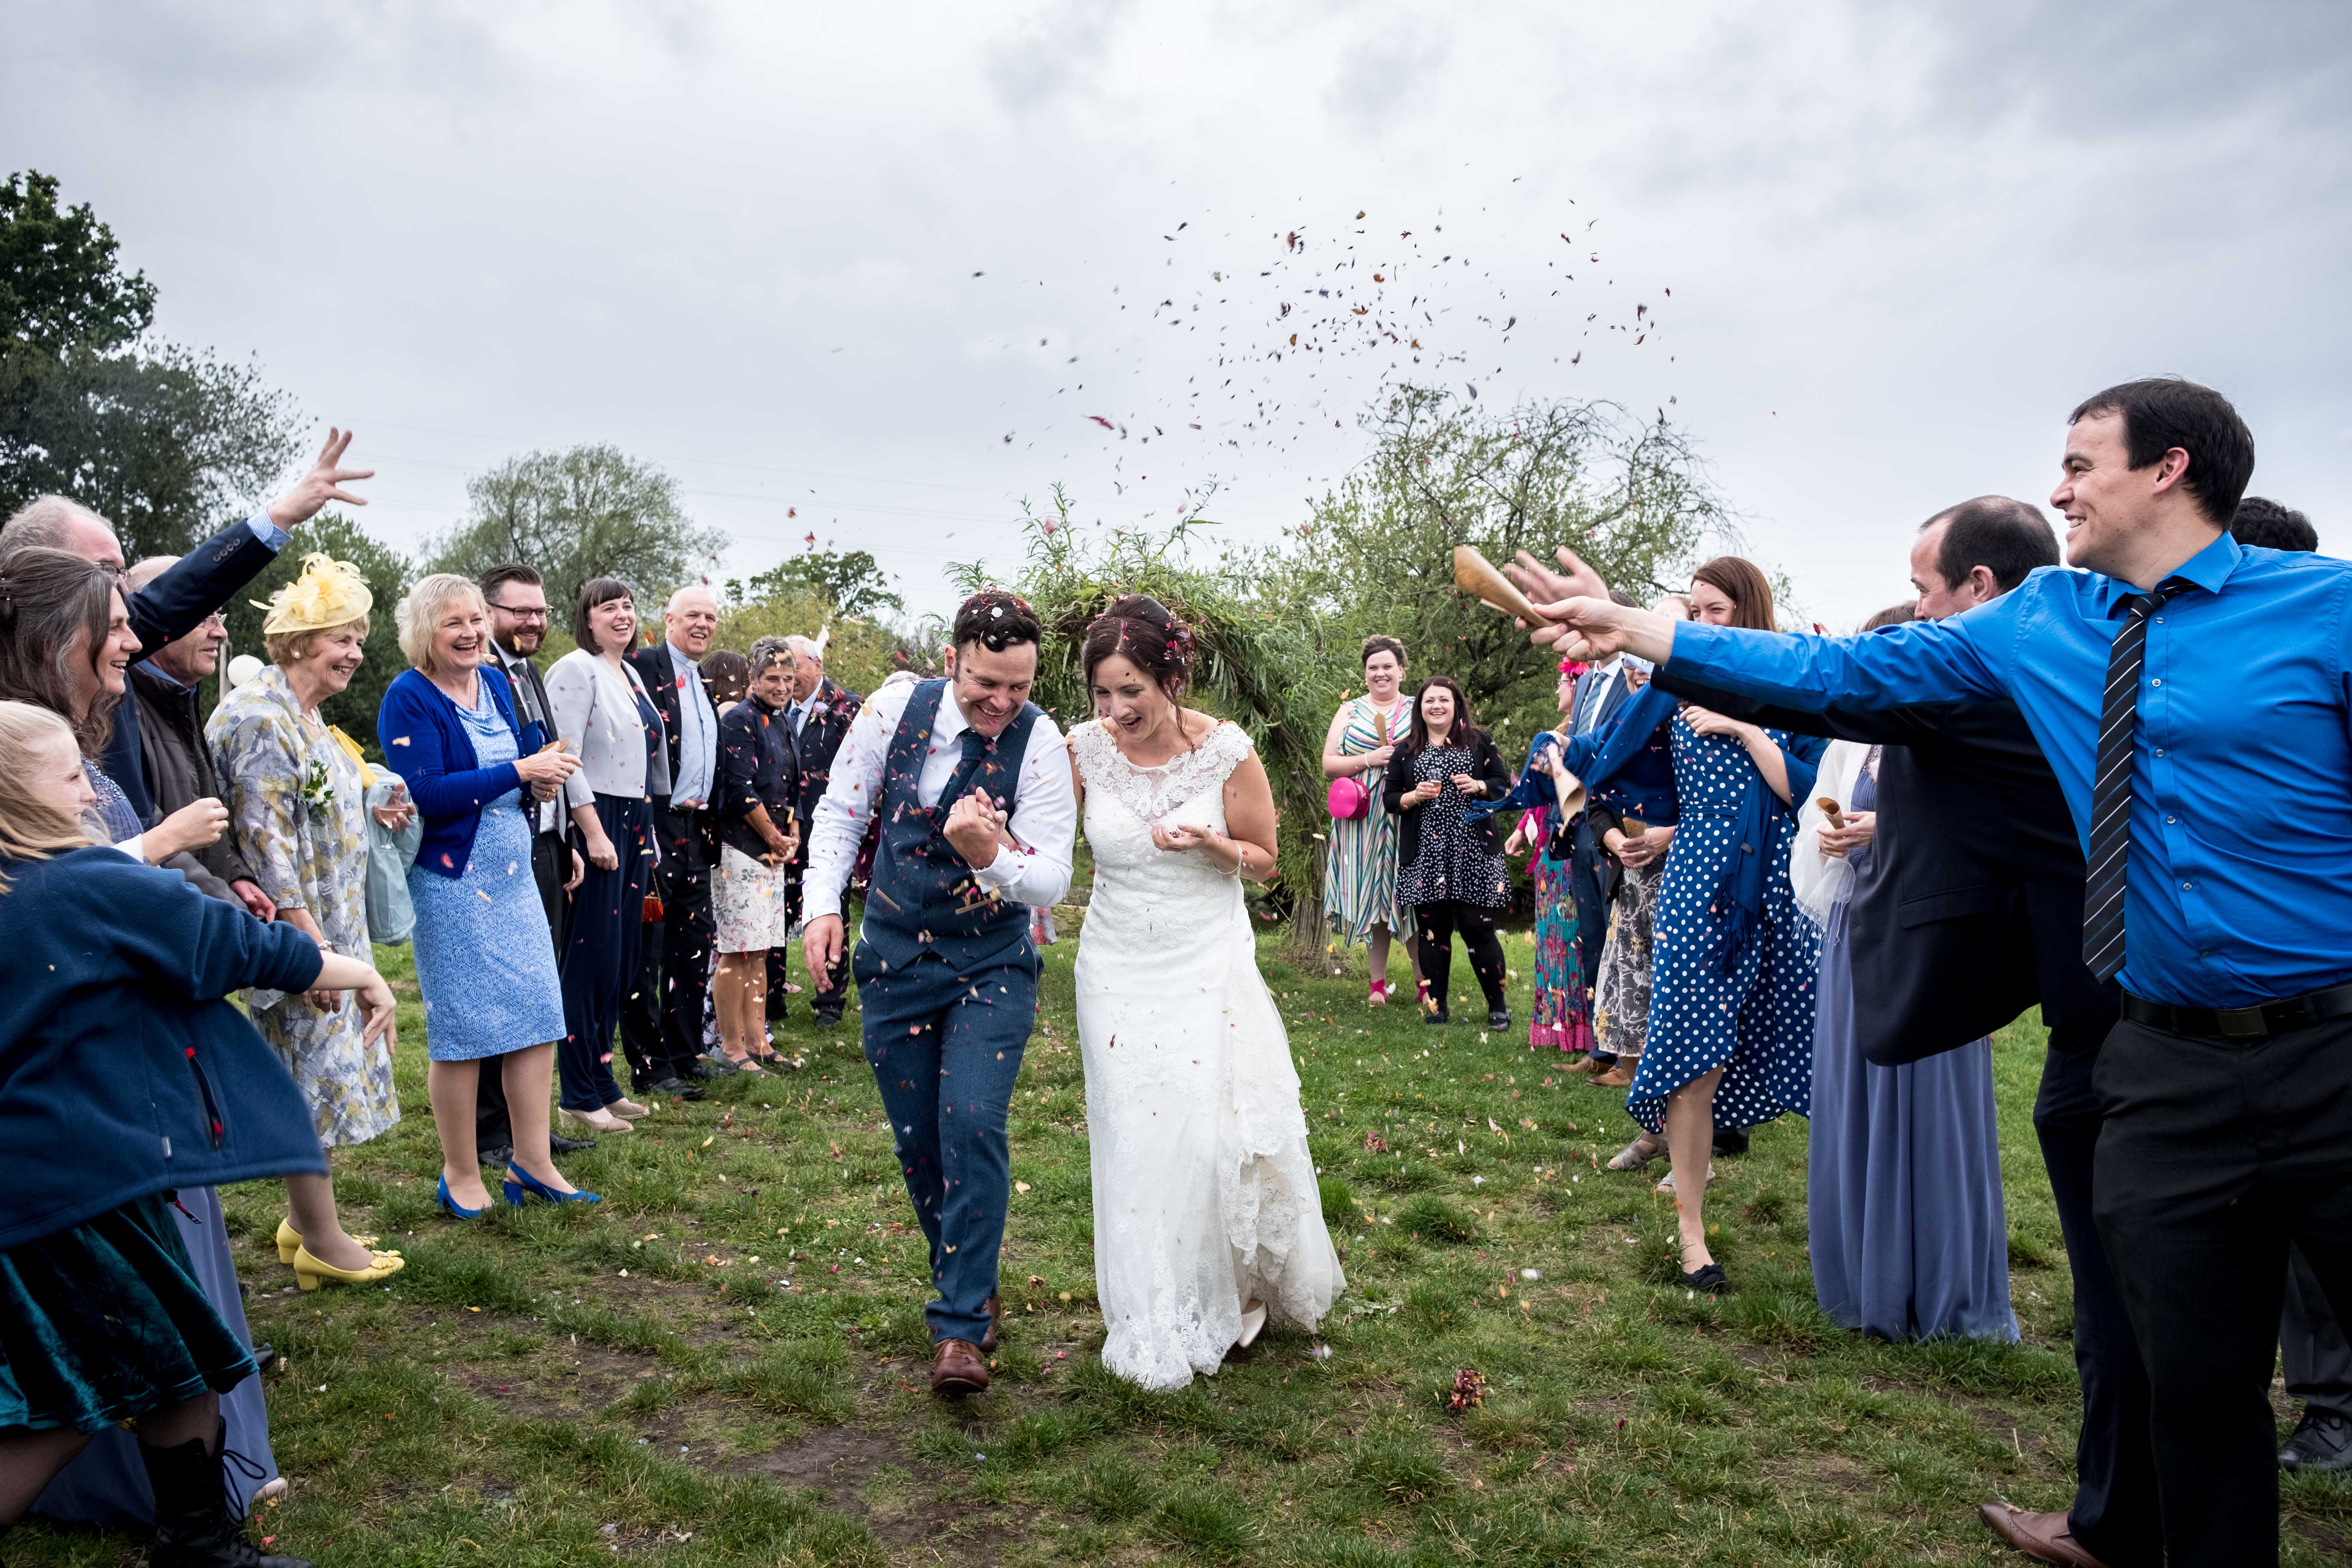 Chester wedding Photographer. Confetti being thrown at a Chester wedding - Photographer is Maurice Roberts